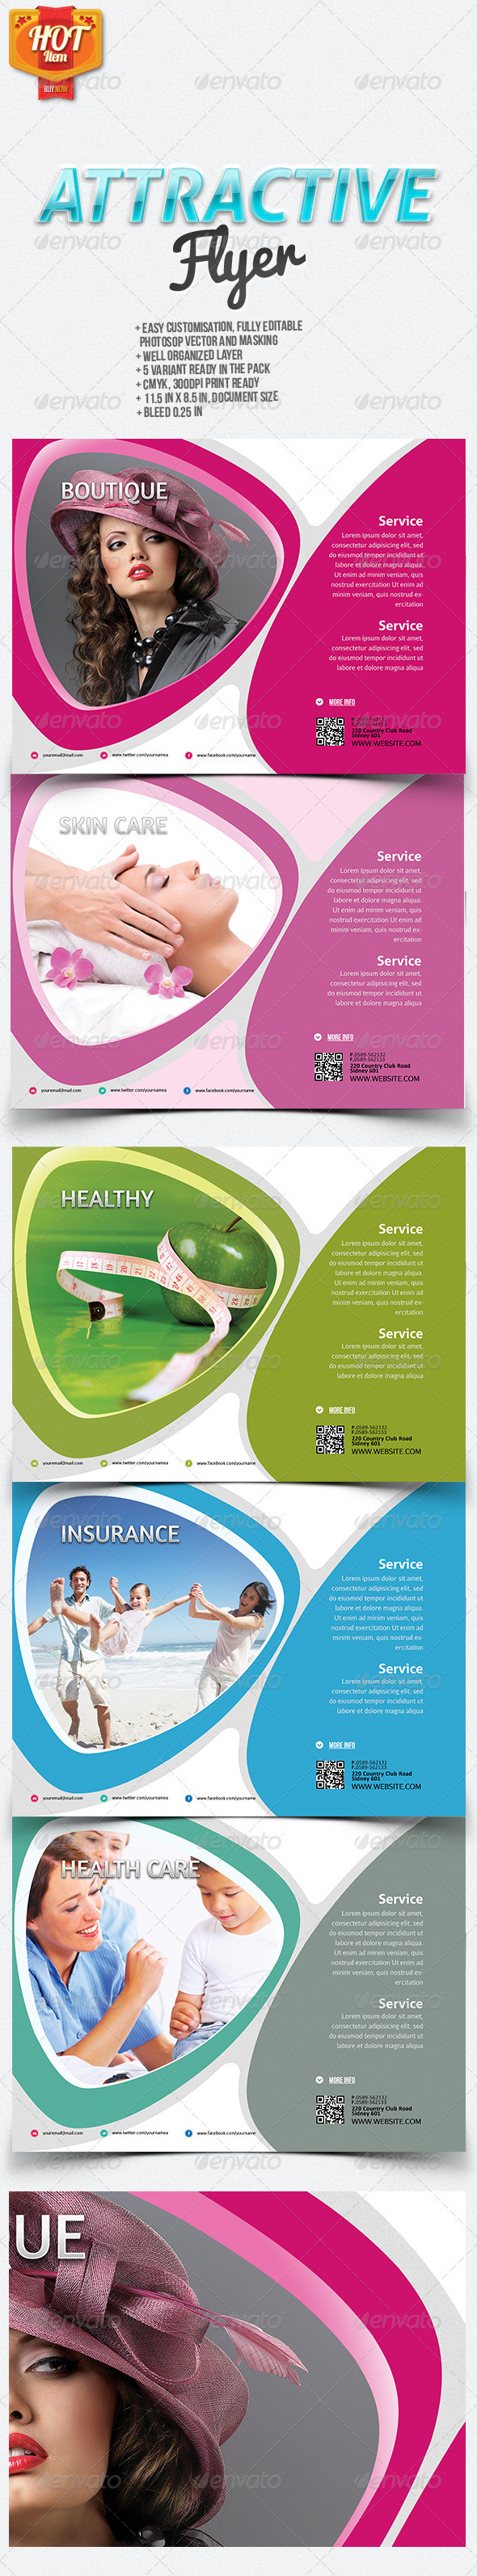 Attractive Flyer - Commerce Flyers